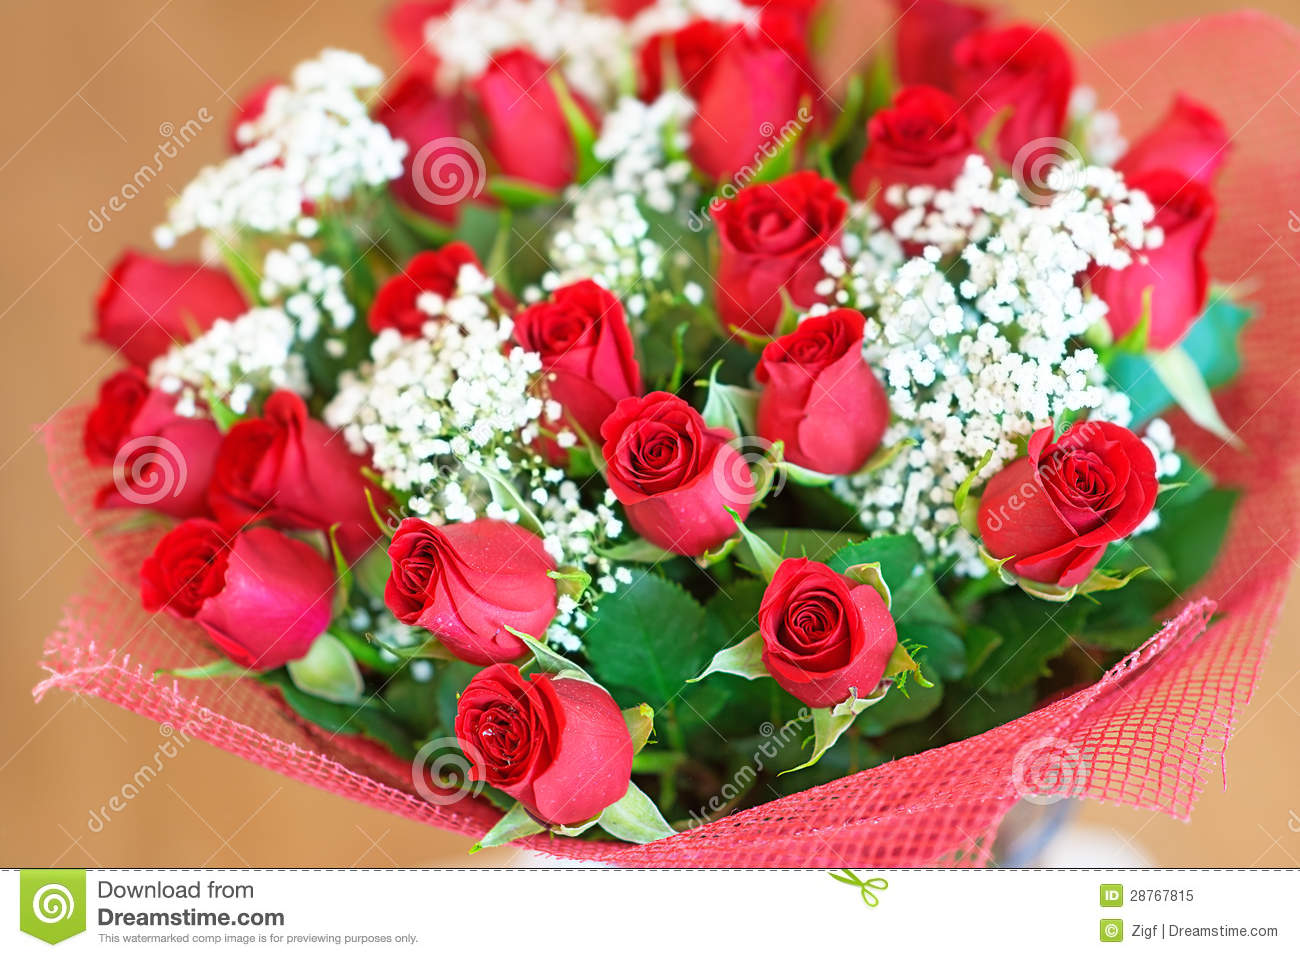 Bouquet des roses rouges image stock image du glorieux for Bouquet de rose